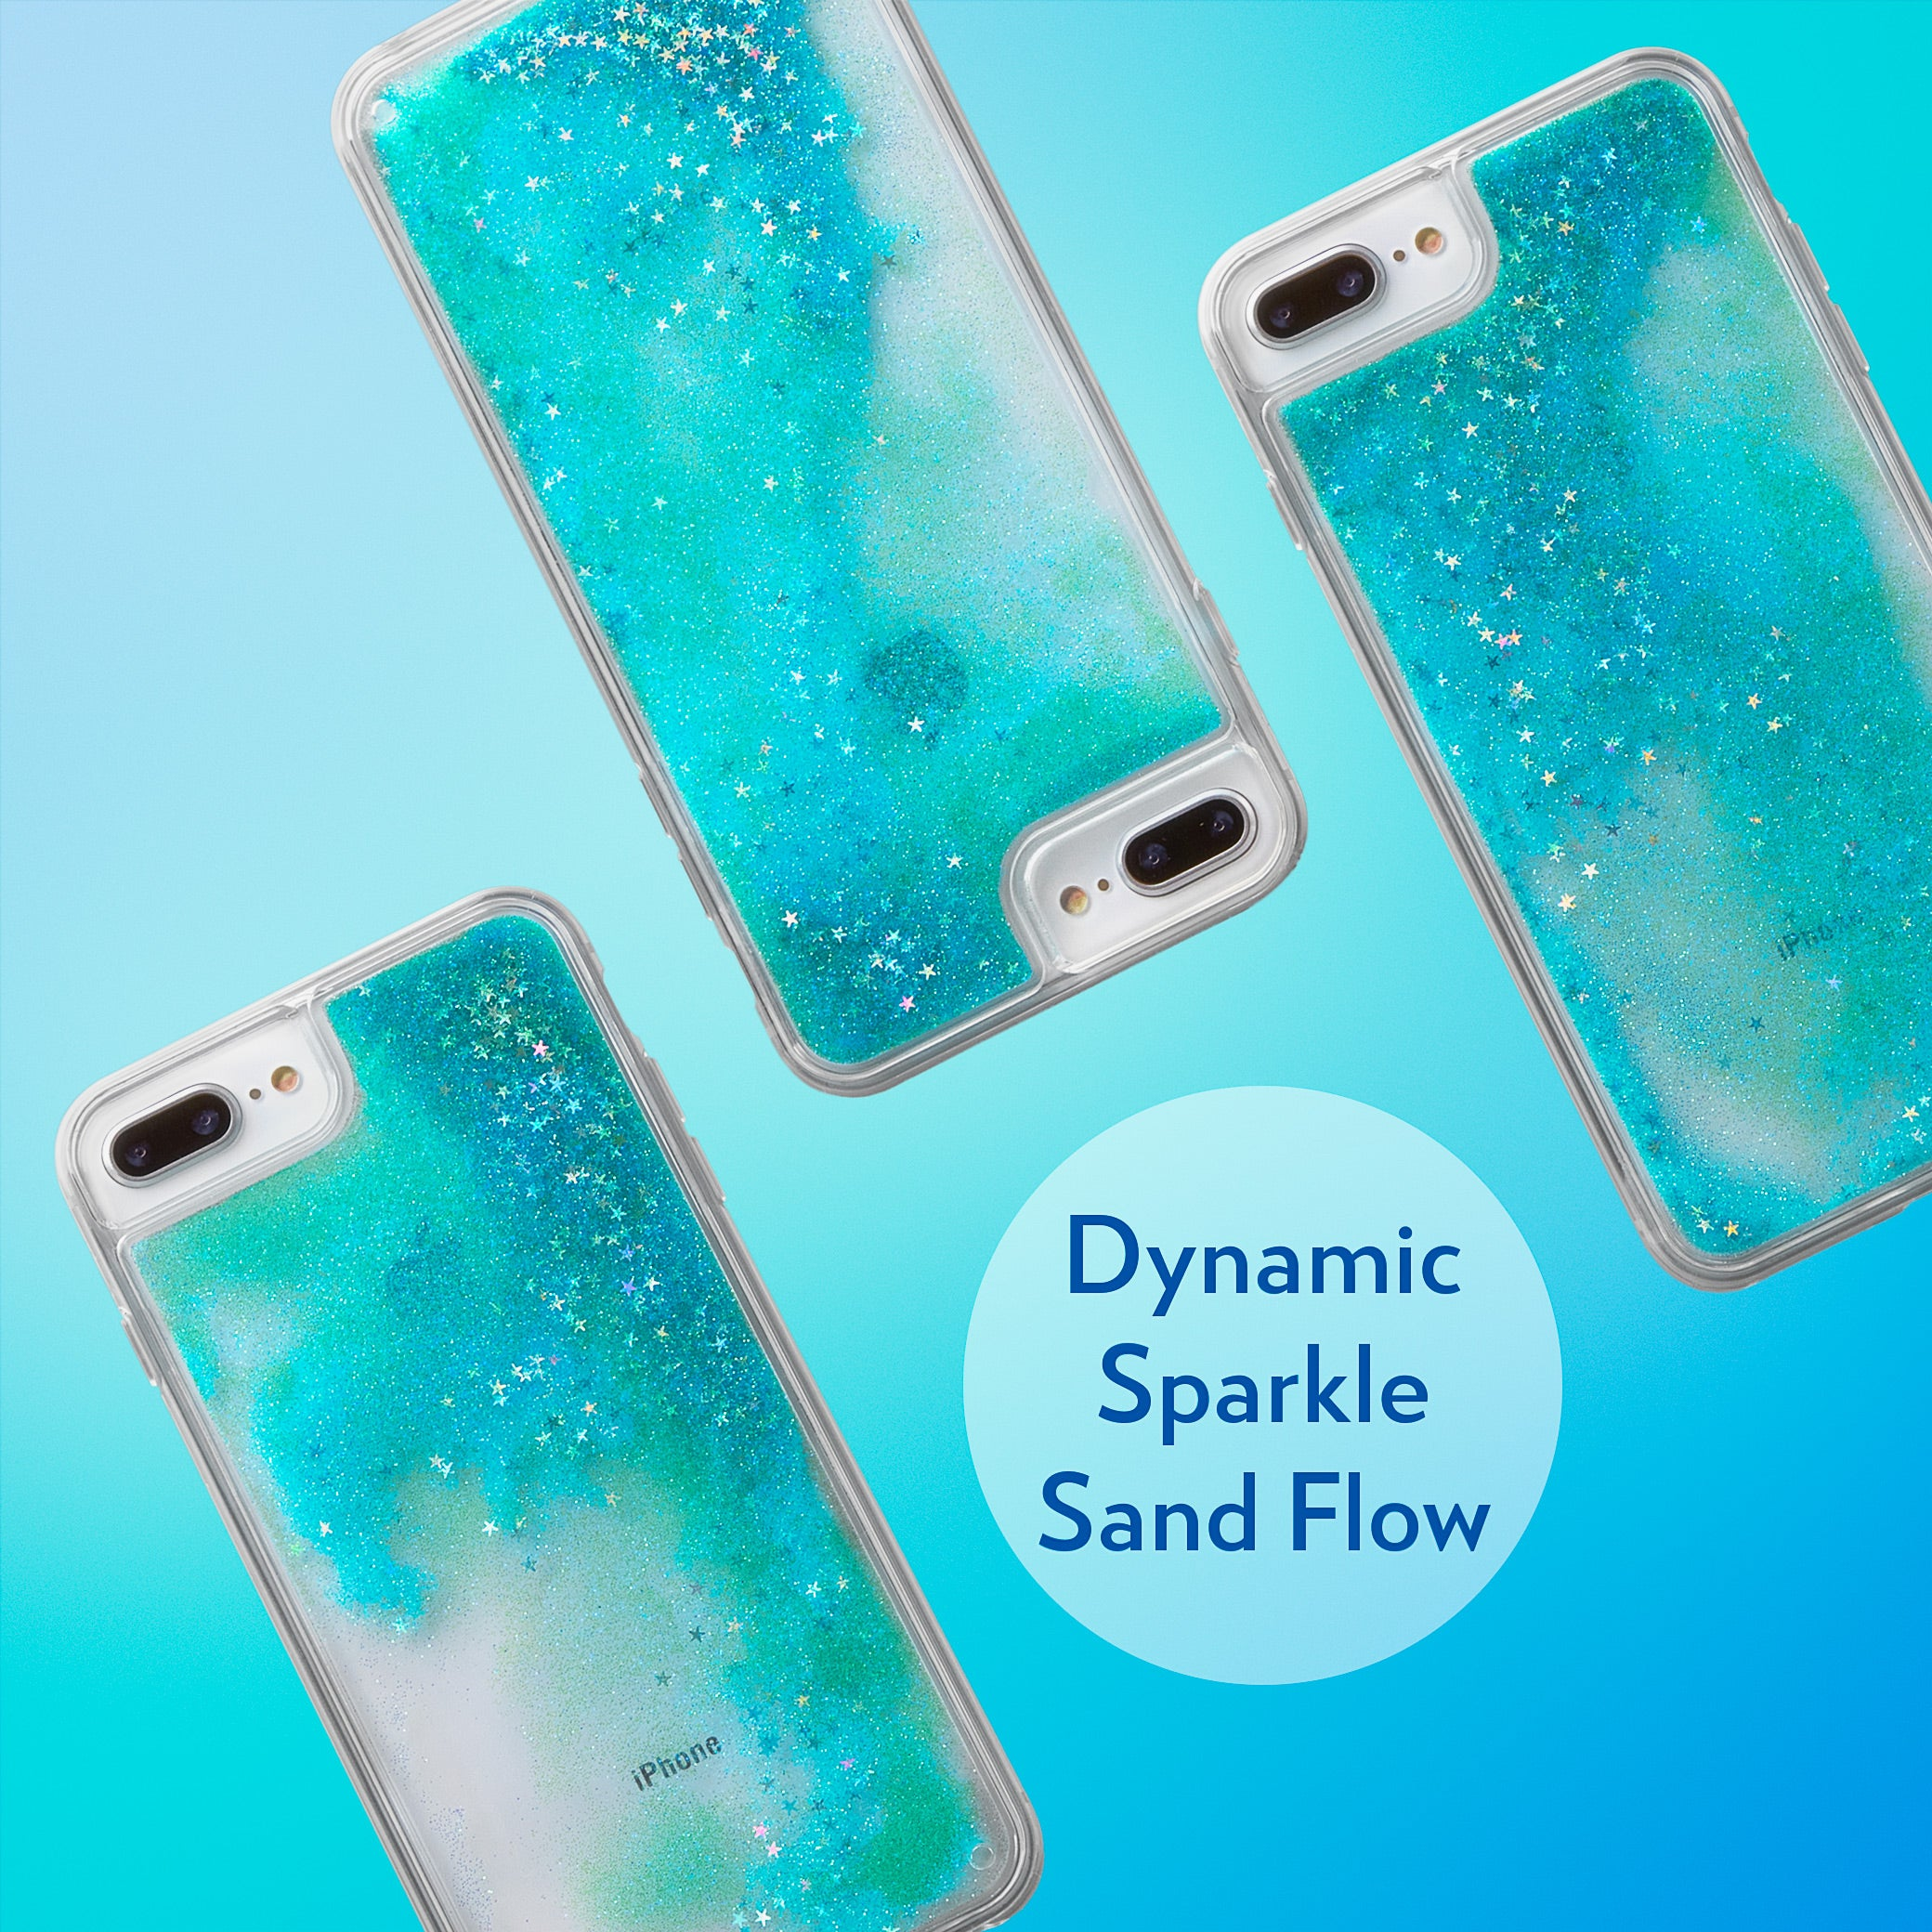 Glitter Liquid Case for iPhone 8 Plus & iPhone 7 Plus - Iridescent Stars in Blue Sand